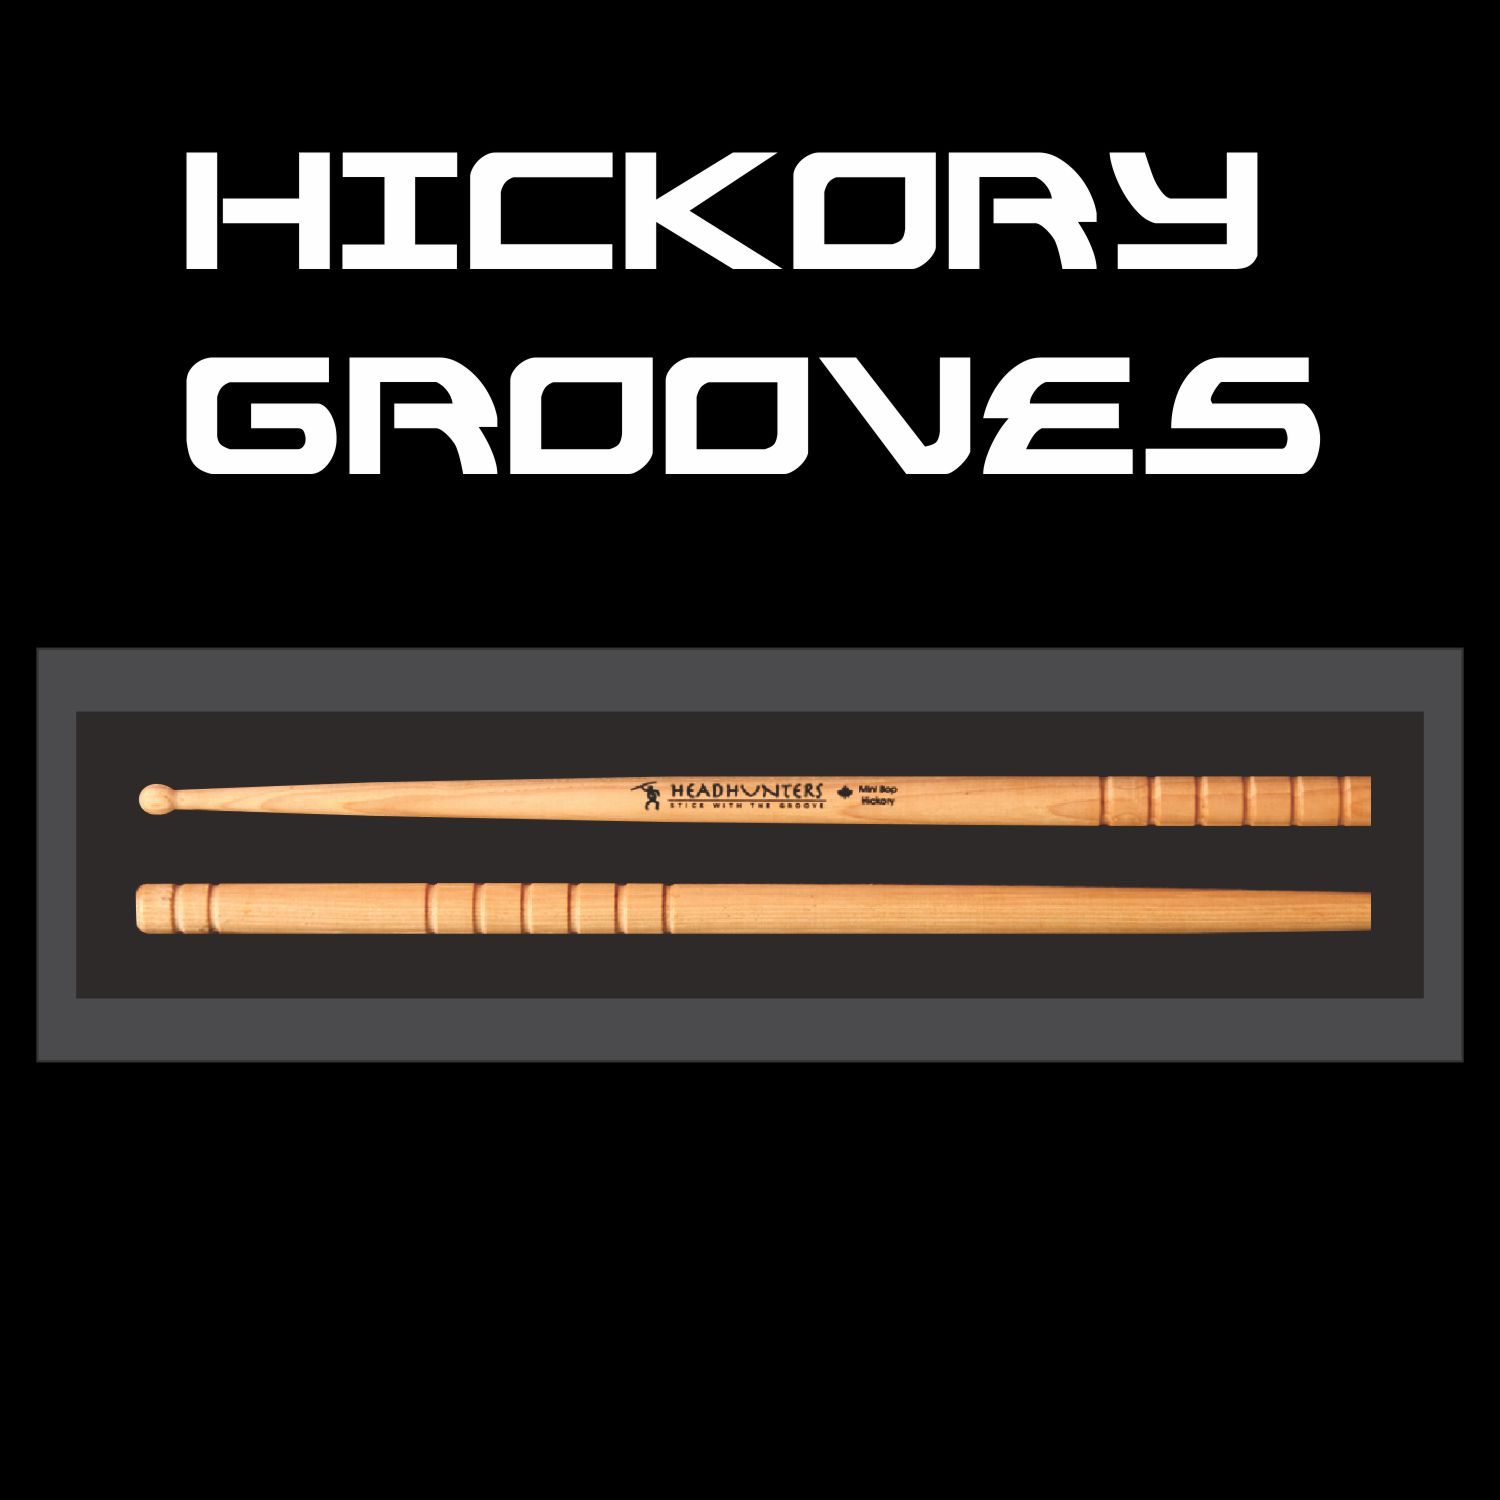 Hickory Grooves